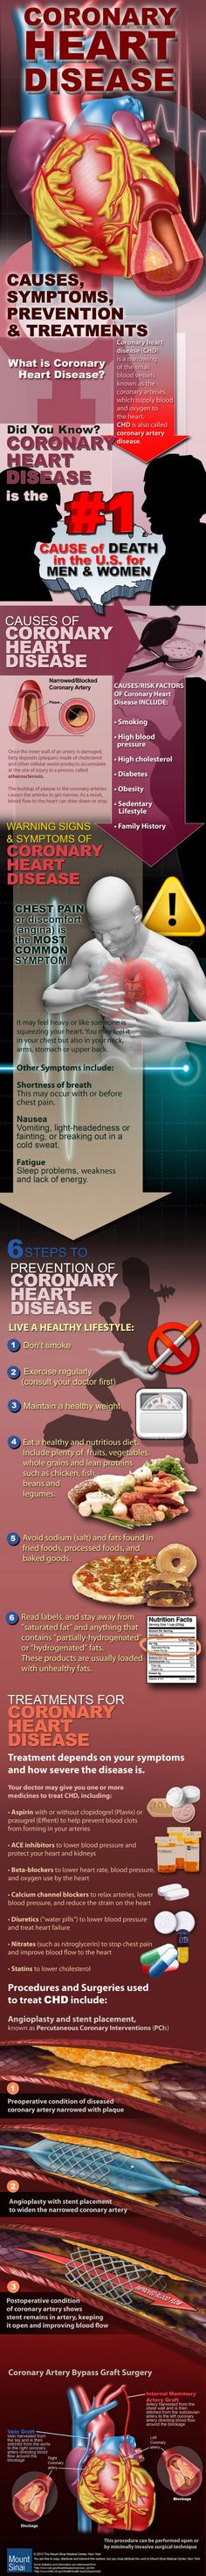 Coronary Heart Disease - Also Known as Coronary Artery Disease - Causes, Symptoms, Prevention and Treatments  Infographic heart attack prevention health